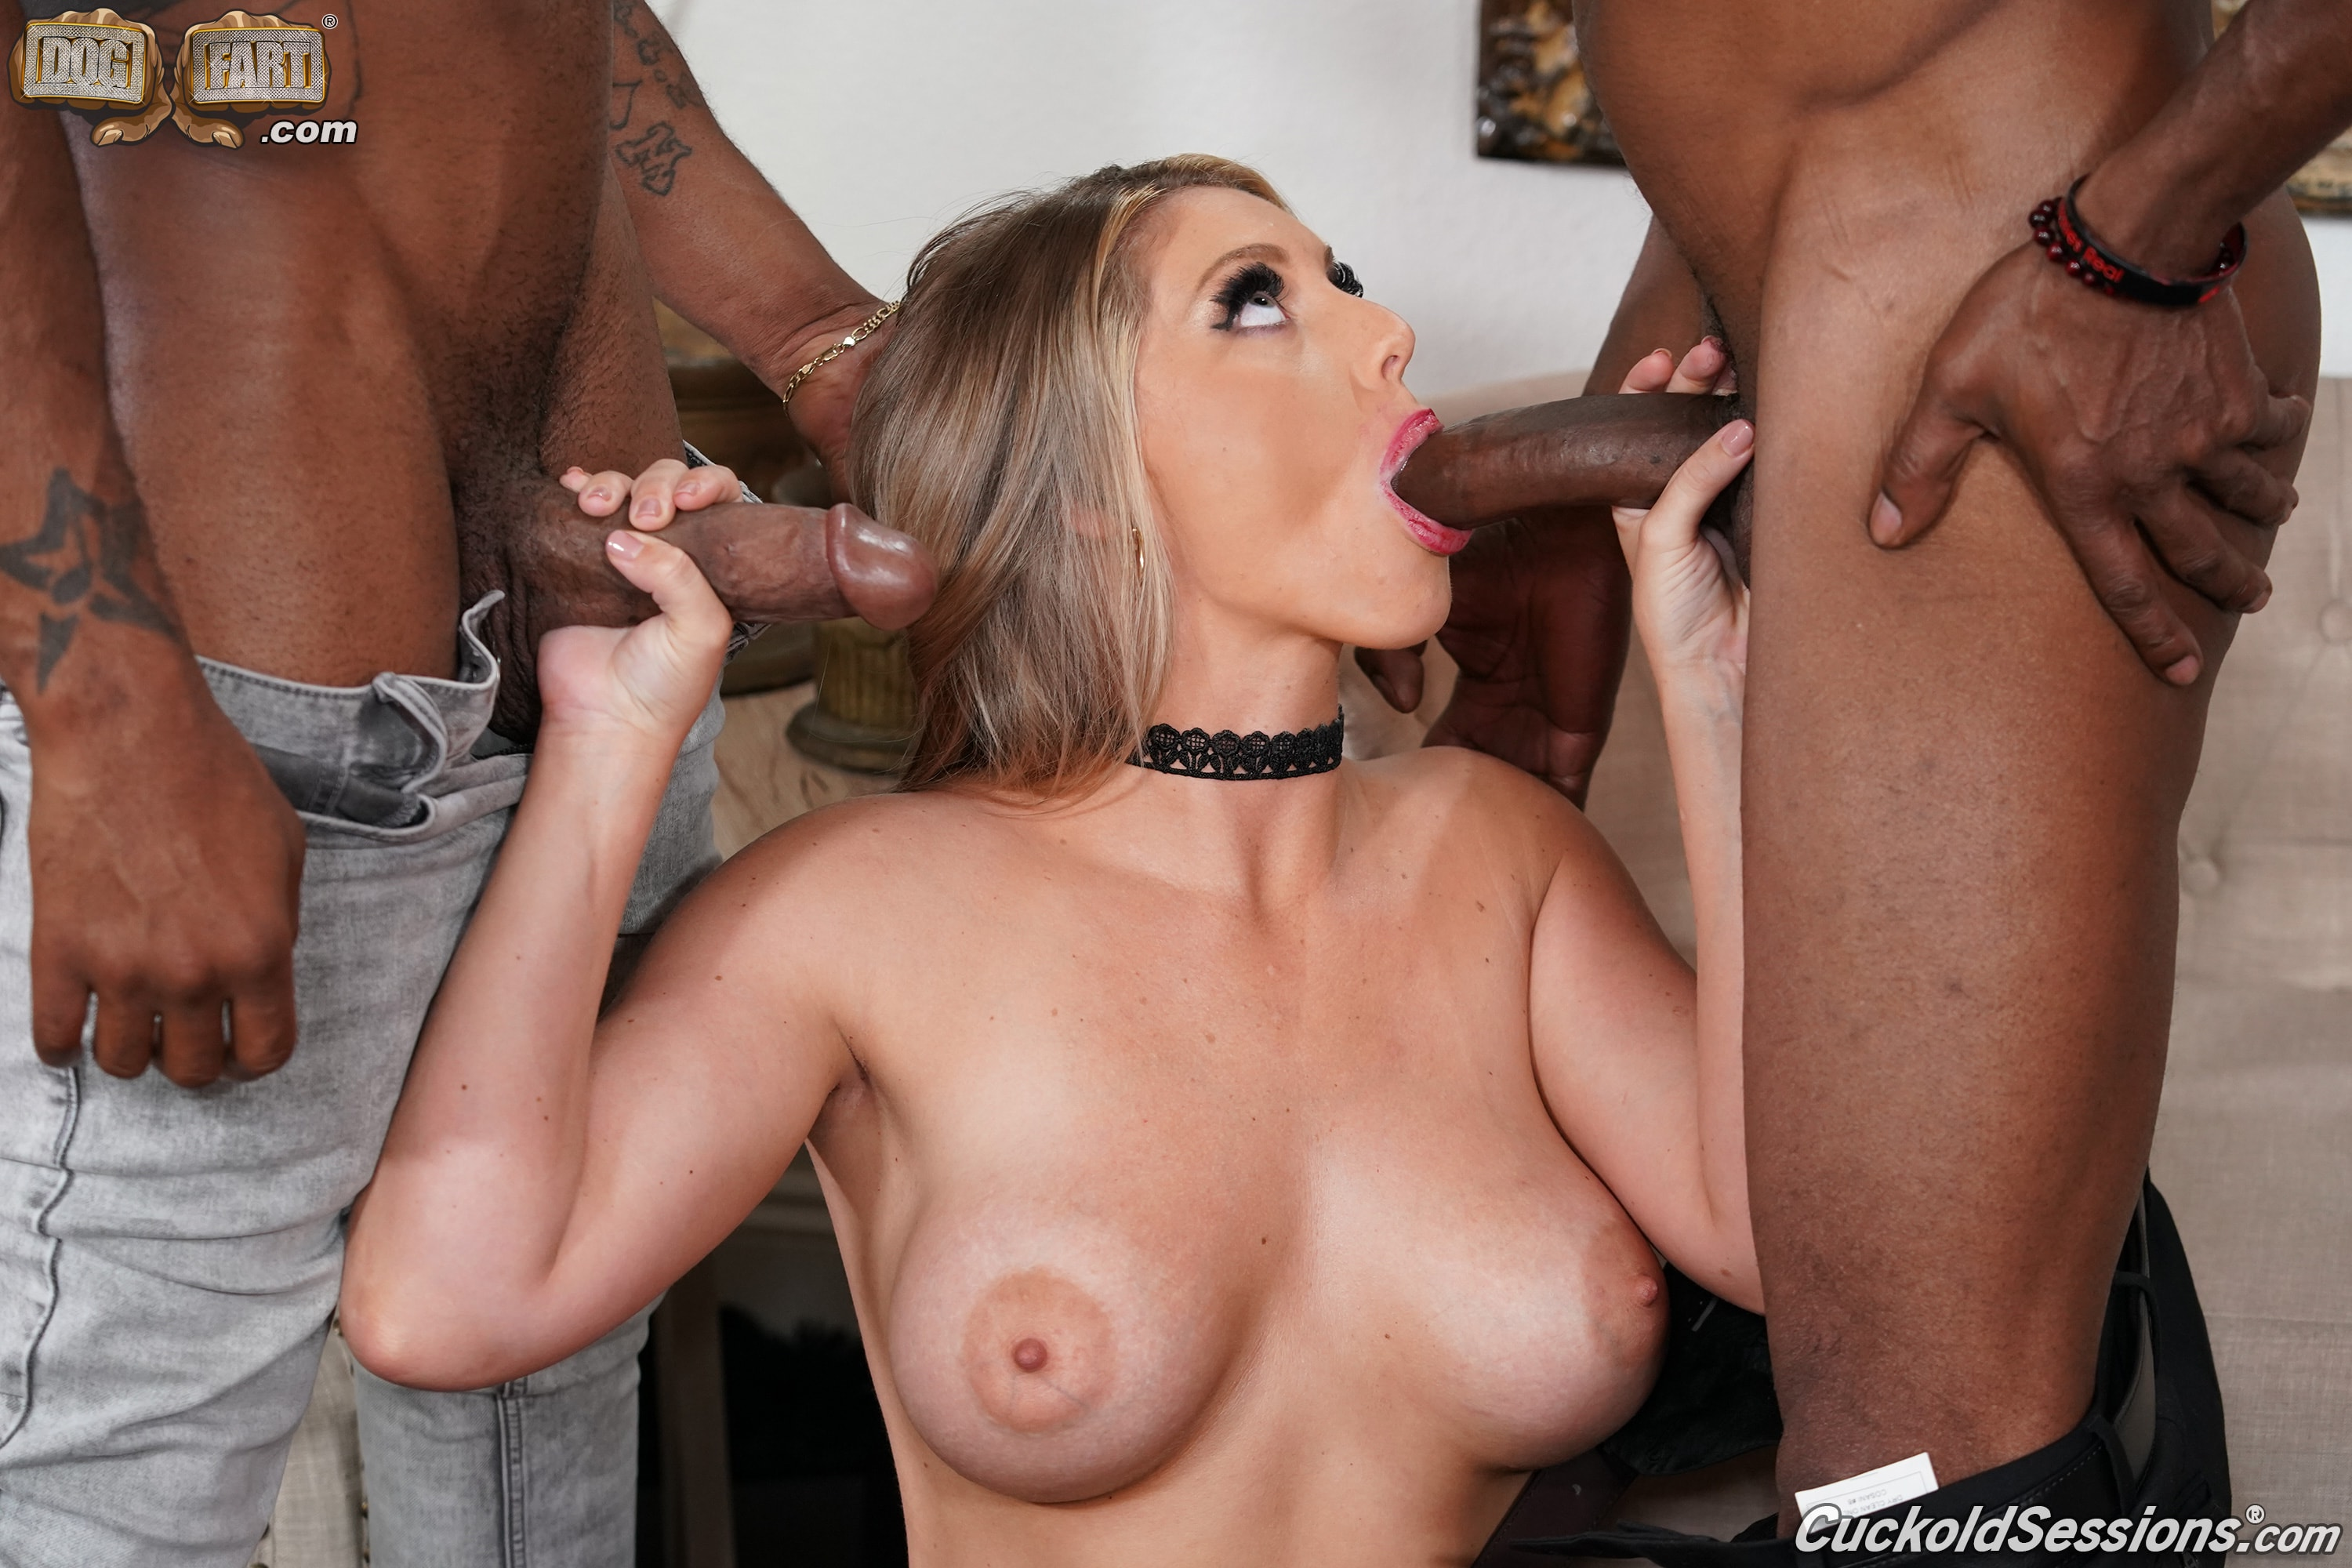 Dogfart '- Cuckold Sessions - Scene 2' starring Kayley Gunner (Photo 17)